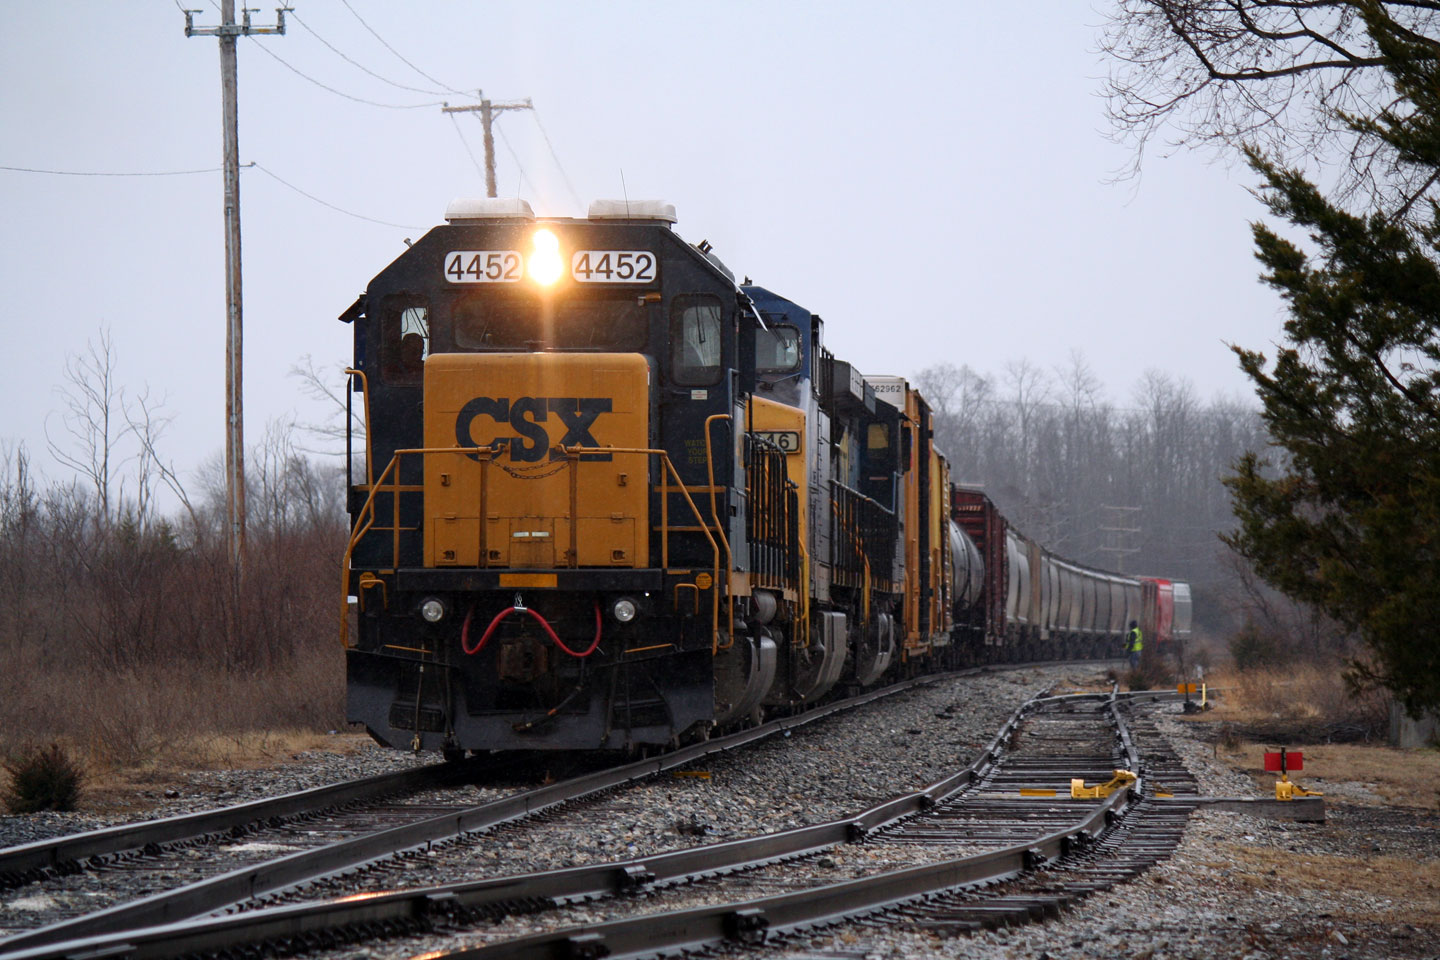 CSX D795 works at the quarry at Bitingers.